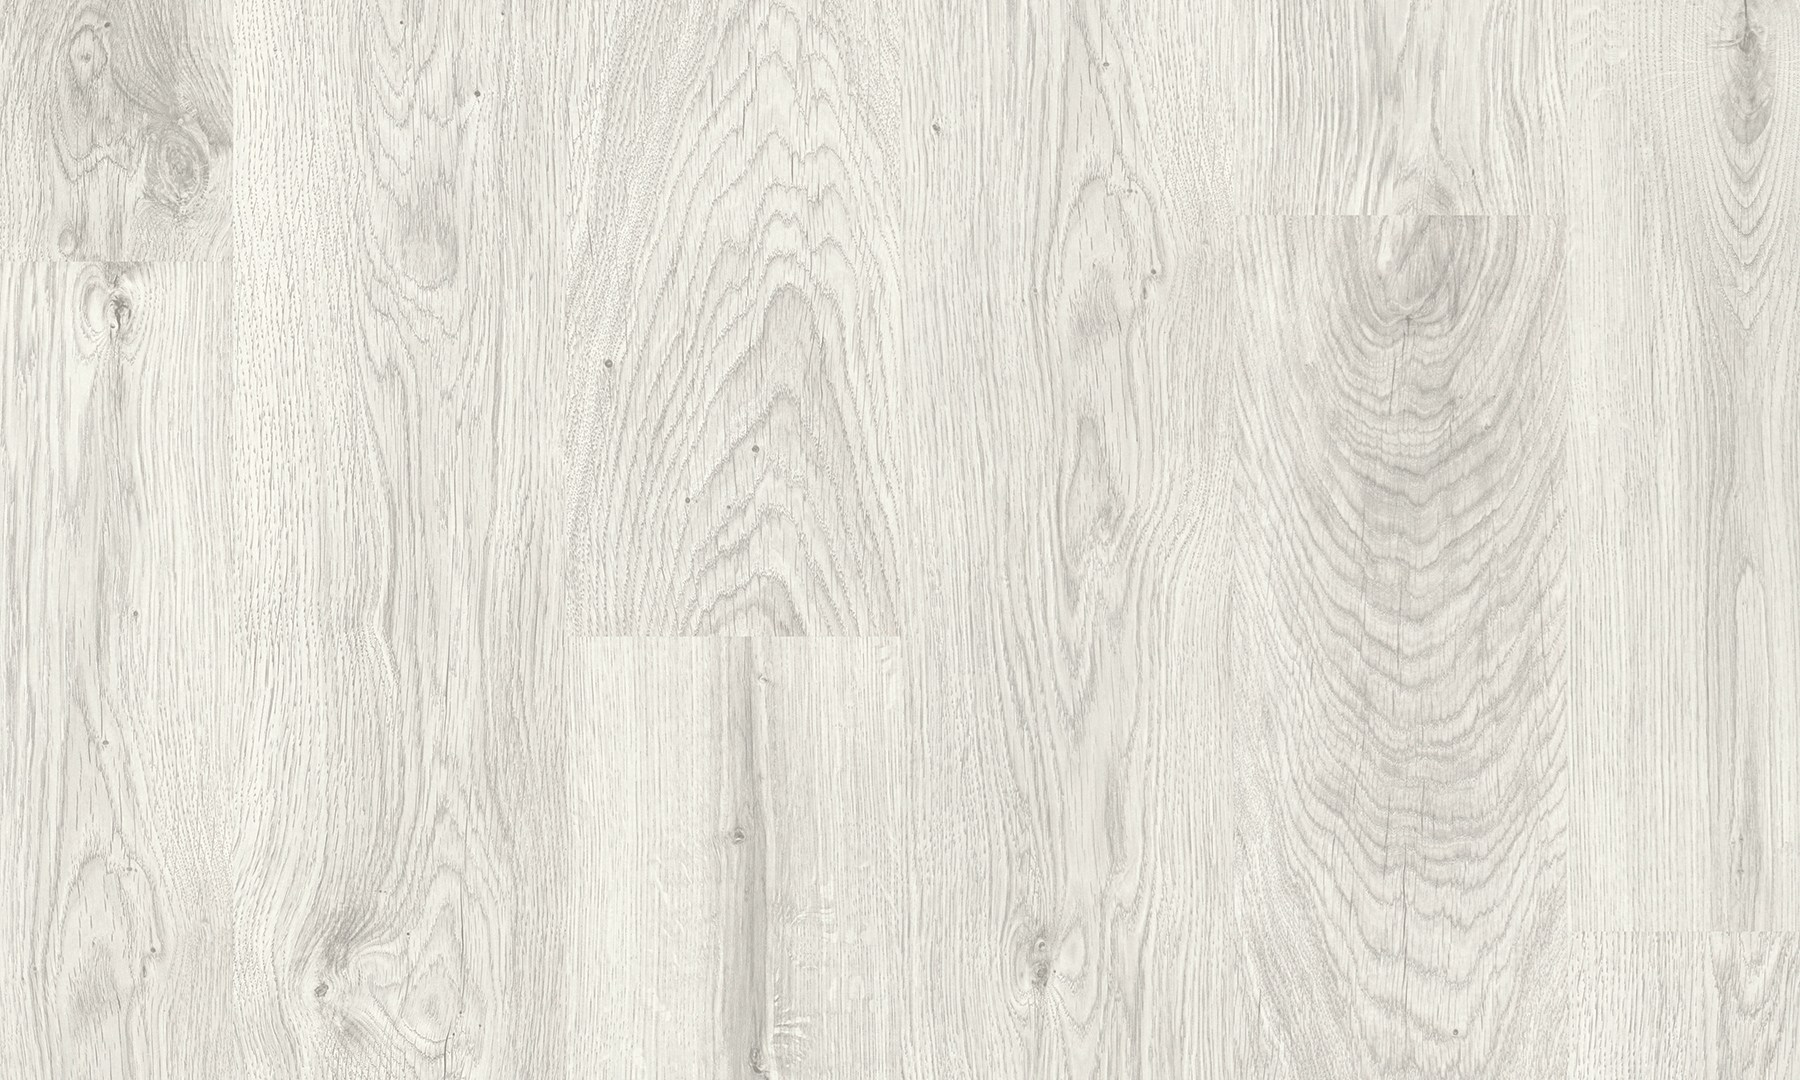 Laminate Flooring Silver Oak By Pergo